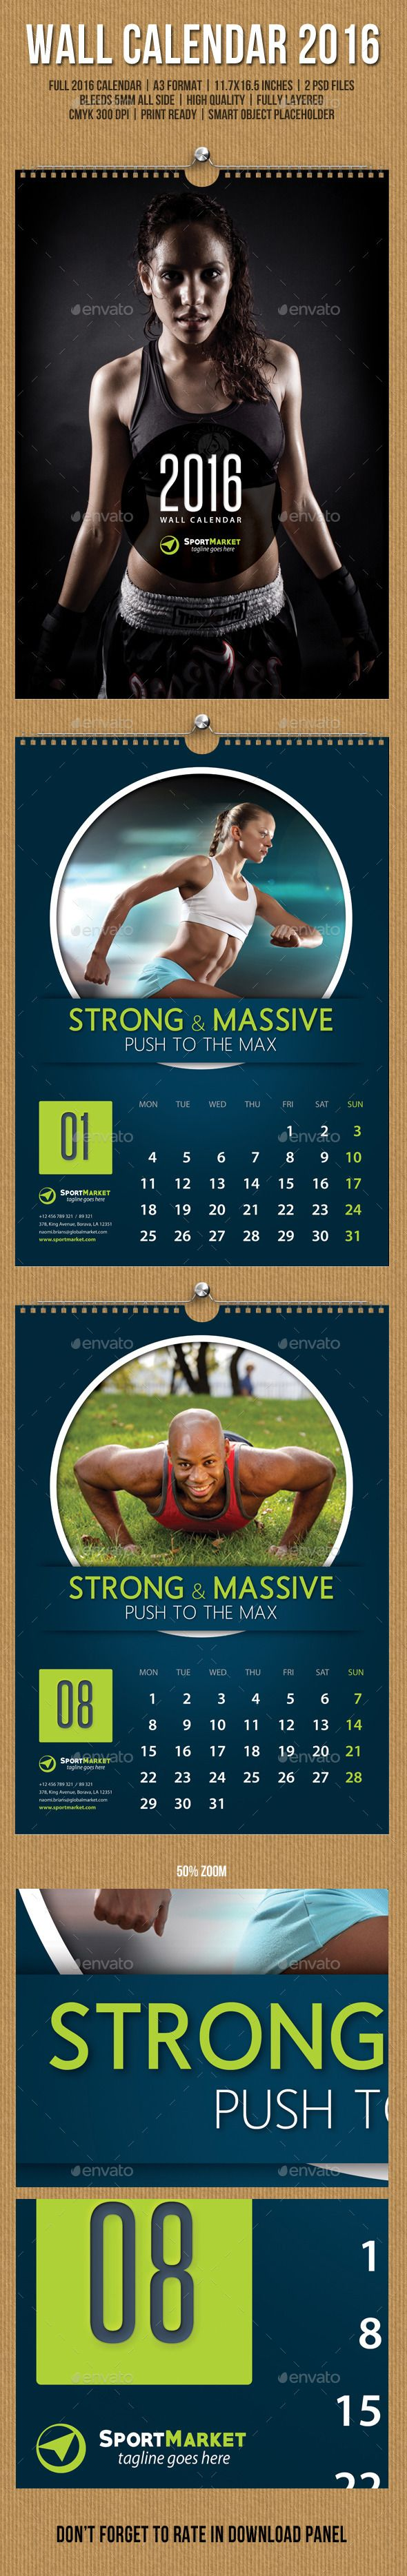 Wall Calendar A3 2016 PSD Template #design Download: http://graphicriver.net/item/wall-calendar-a3-2016-v20/12934104?ref=ksioks